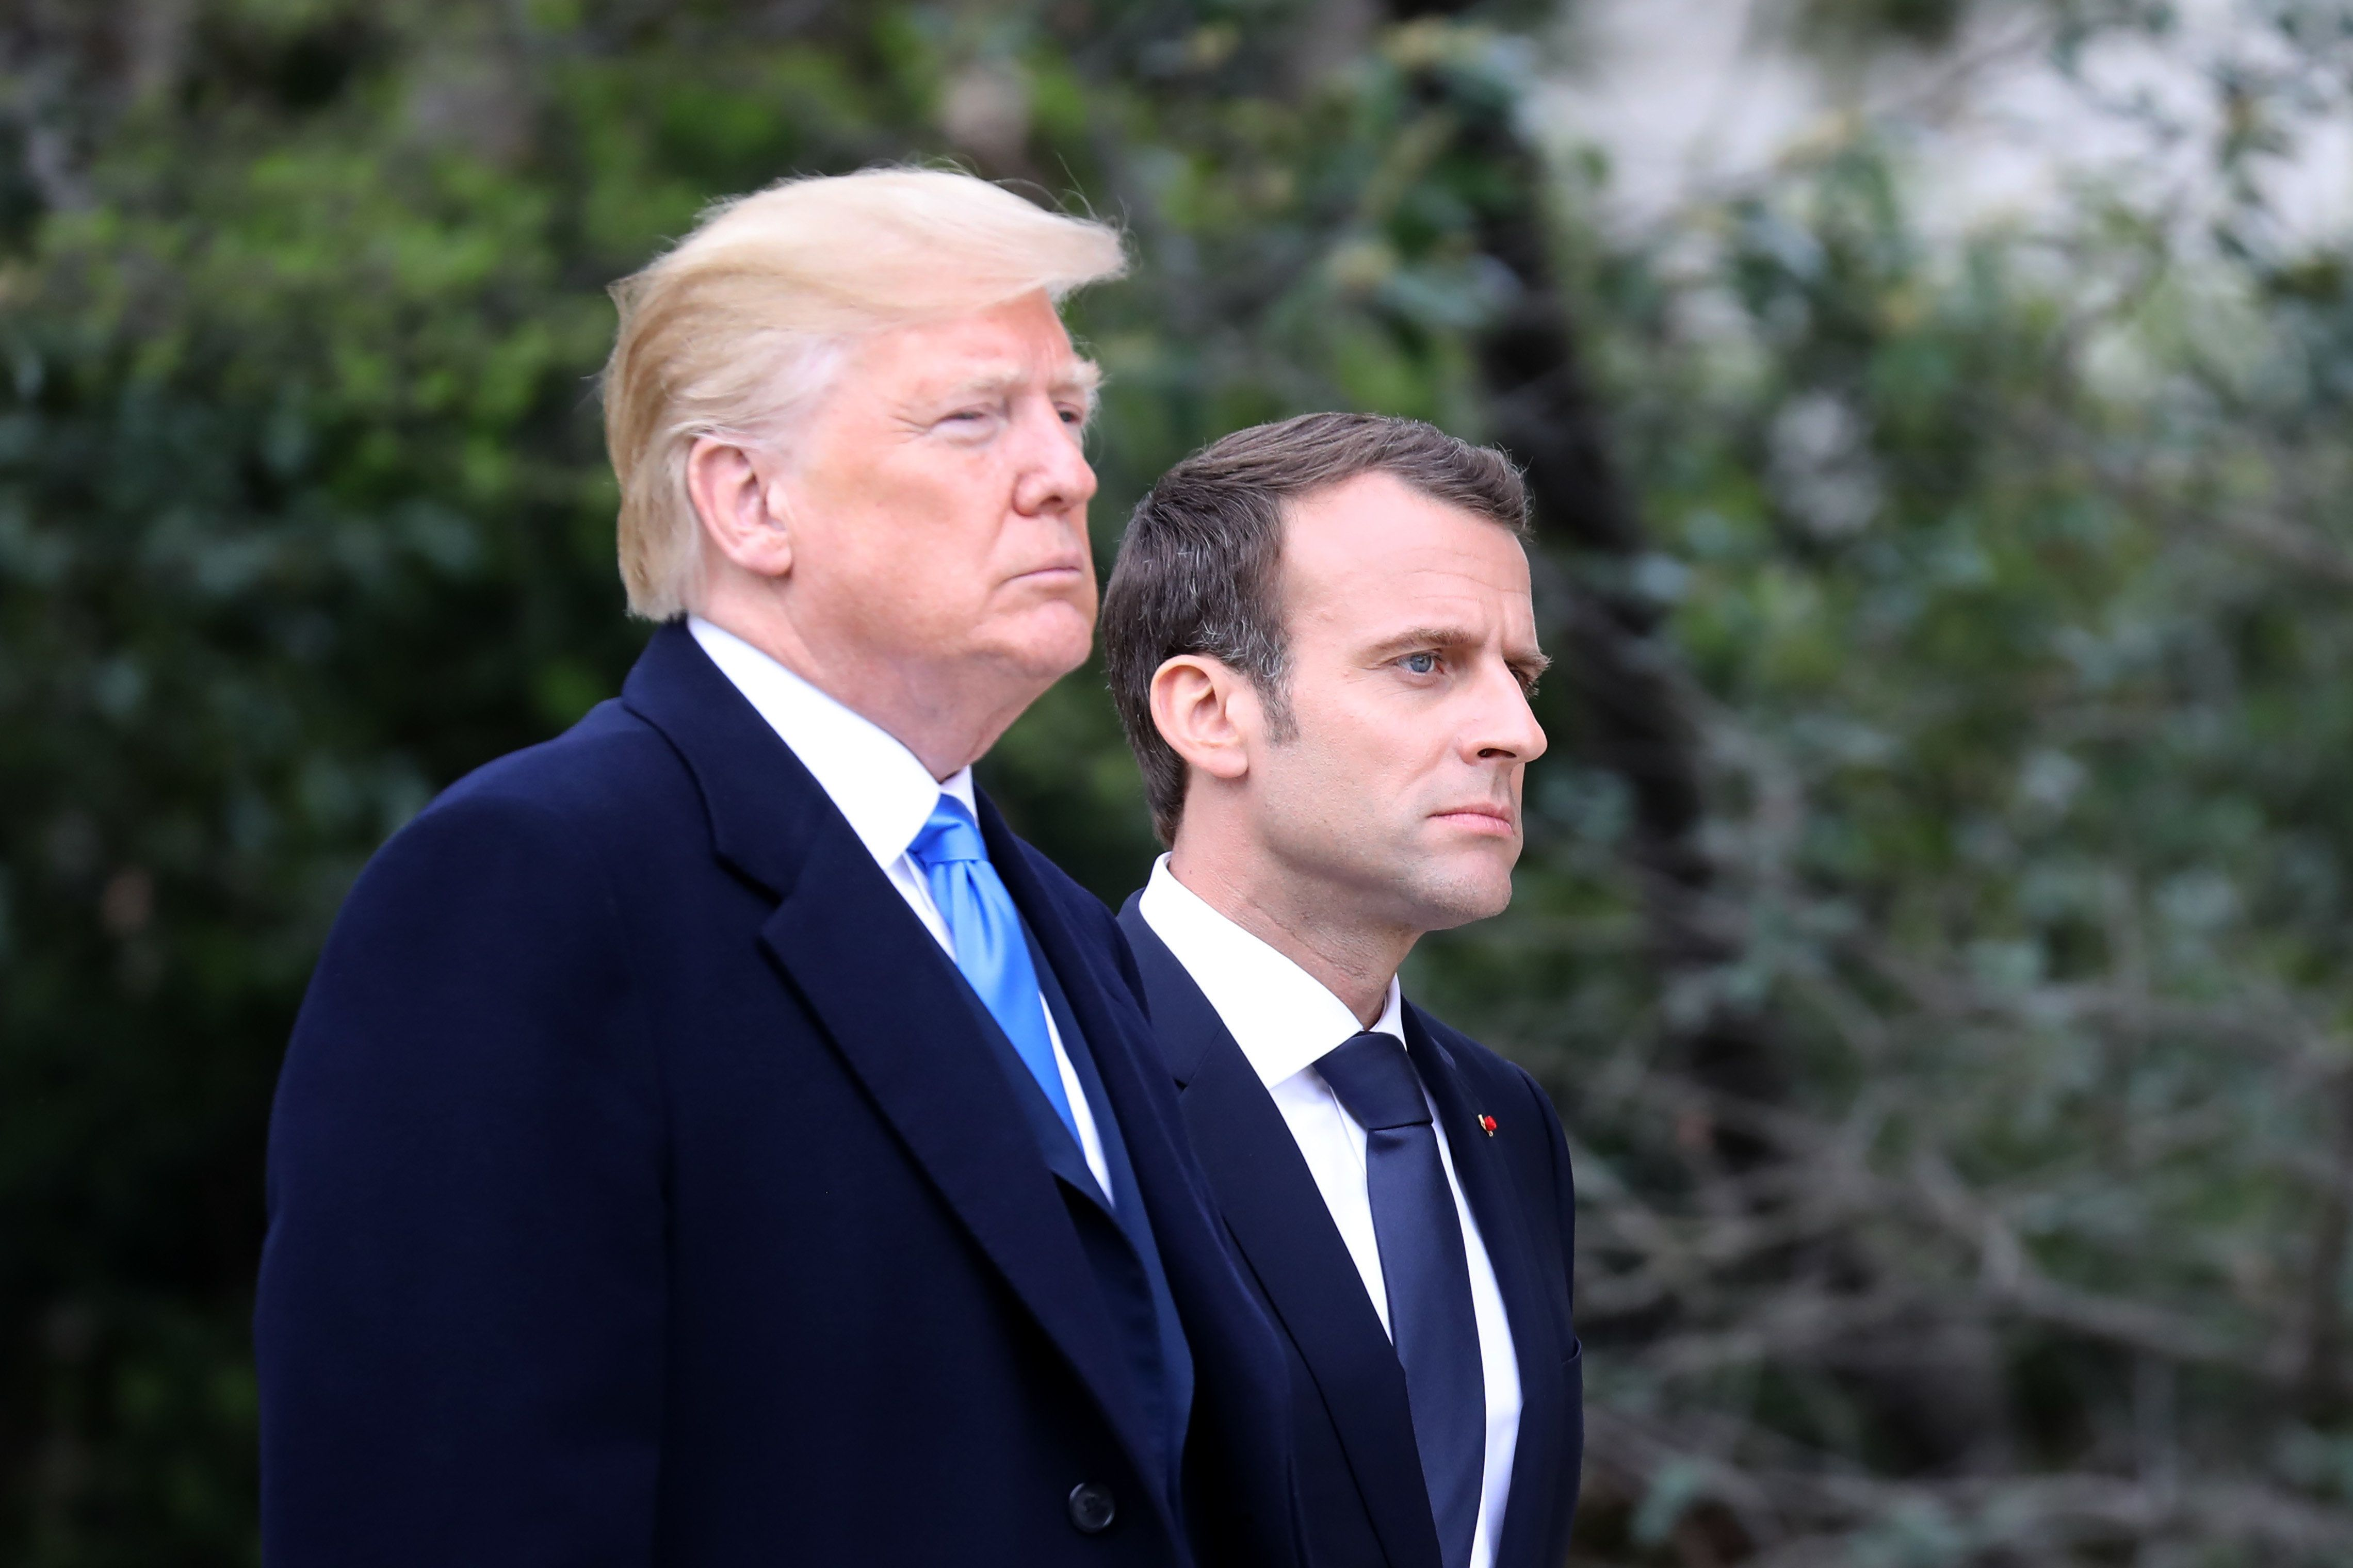 TOPSHOT - US President Donald Trump walks with French President Emmanuel Macron at Mount Vernon, the estate of the first US President George Washington, in Mount Vernon, Virginia, April 23, 2018. (Photo by Ludovic MARIN / AFP)        (Photo credit should read LUDOVIC MARIN/AFP/Getty Images)